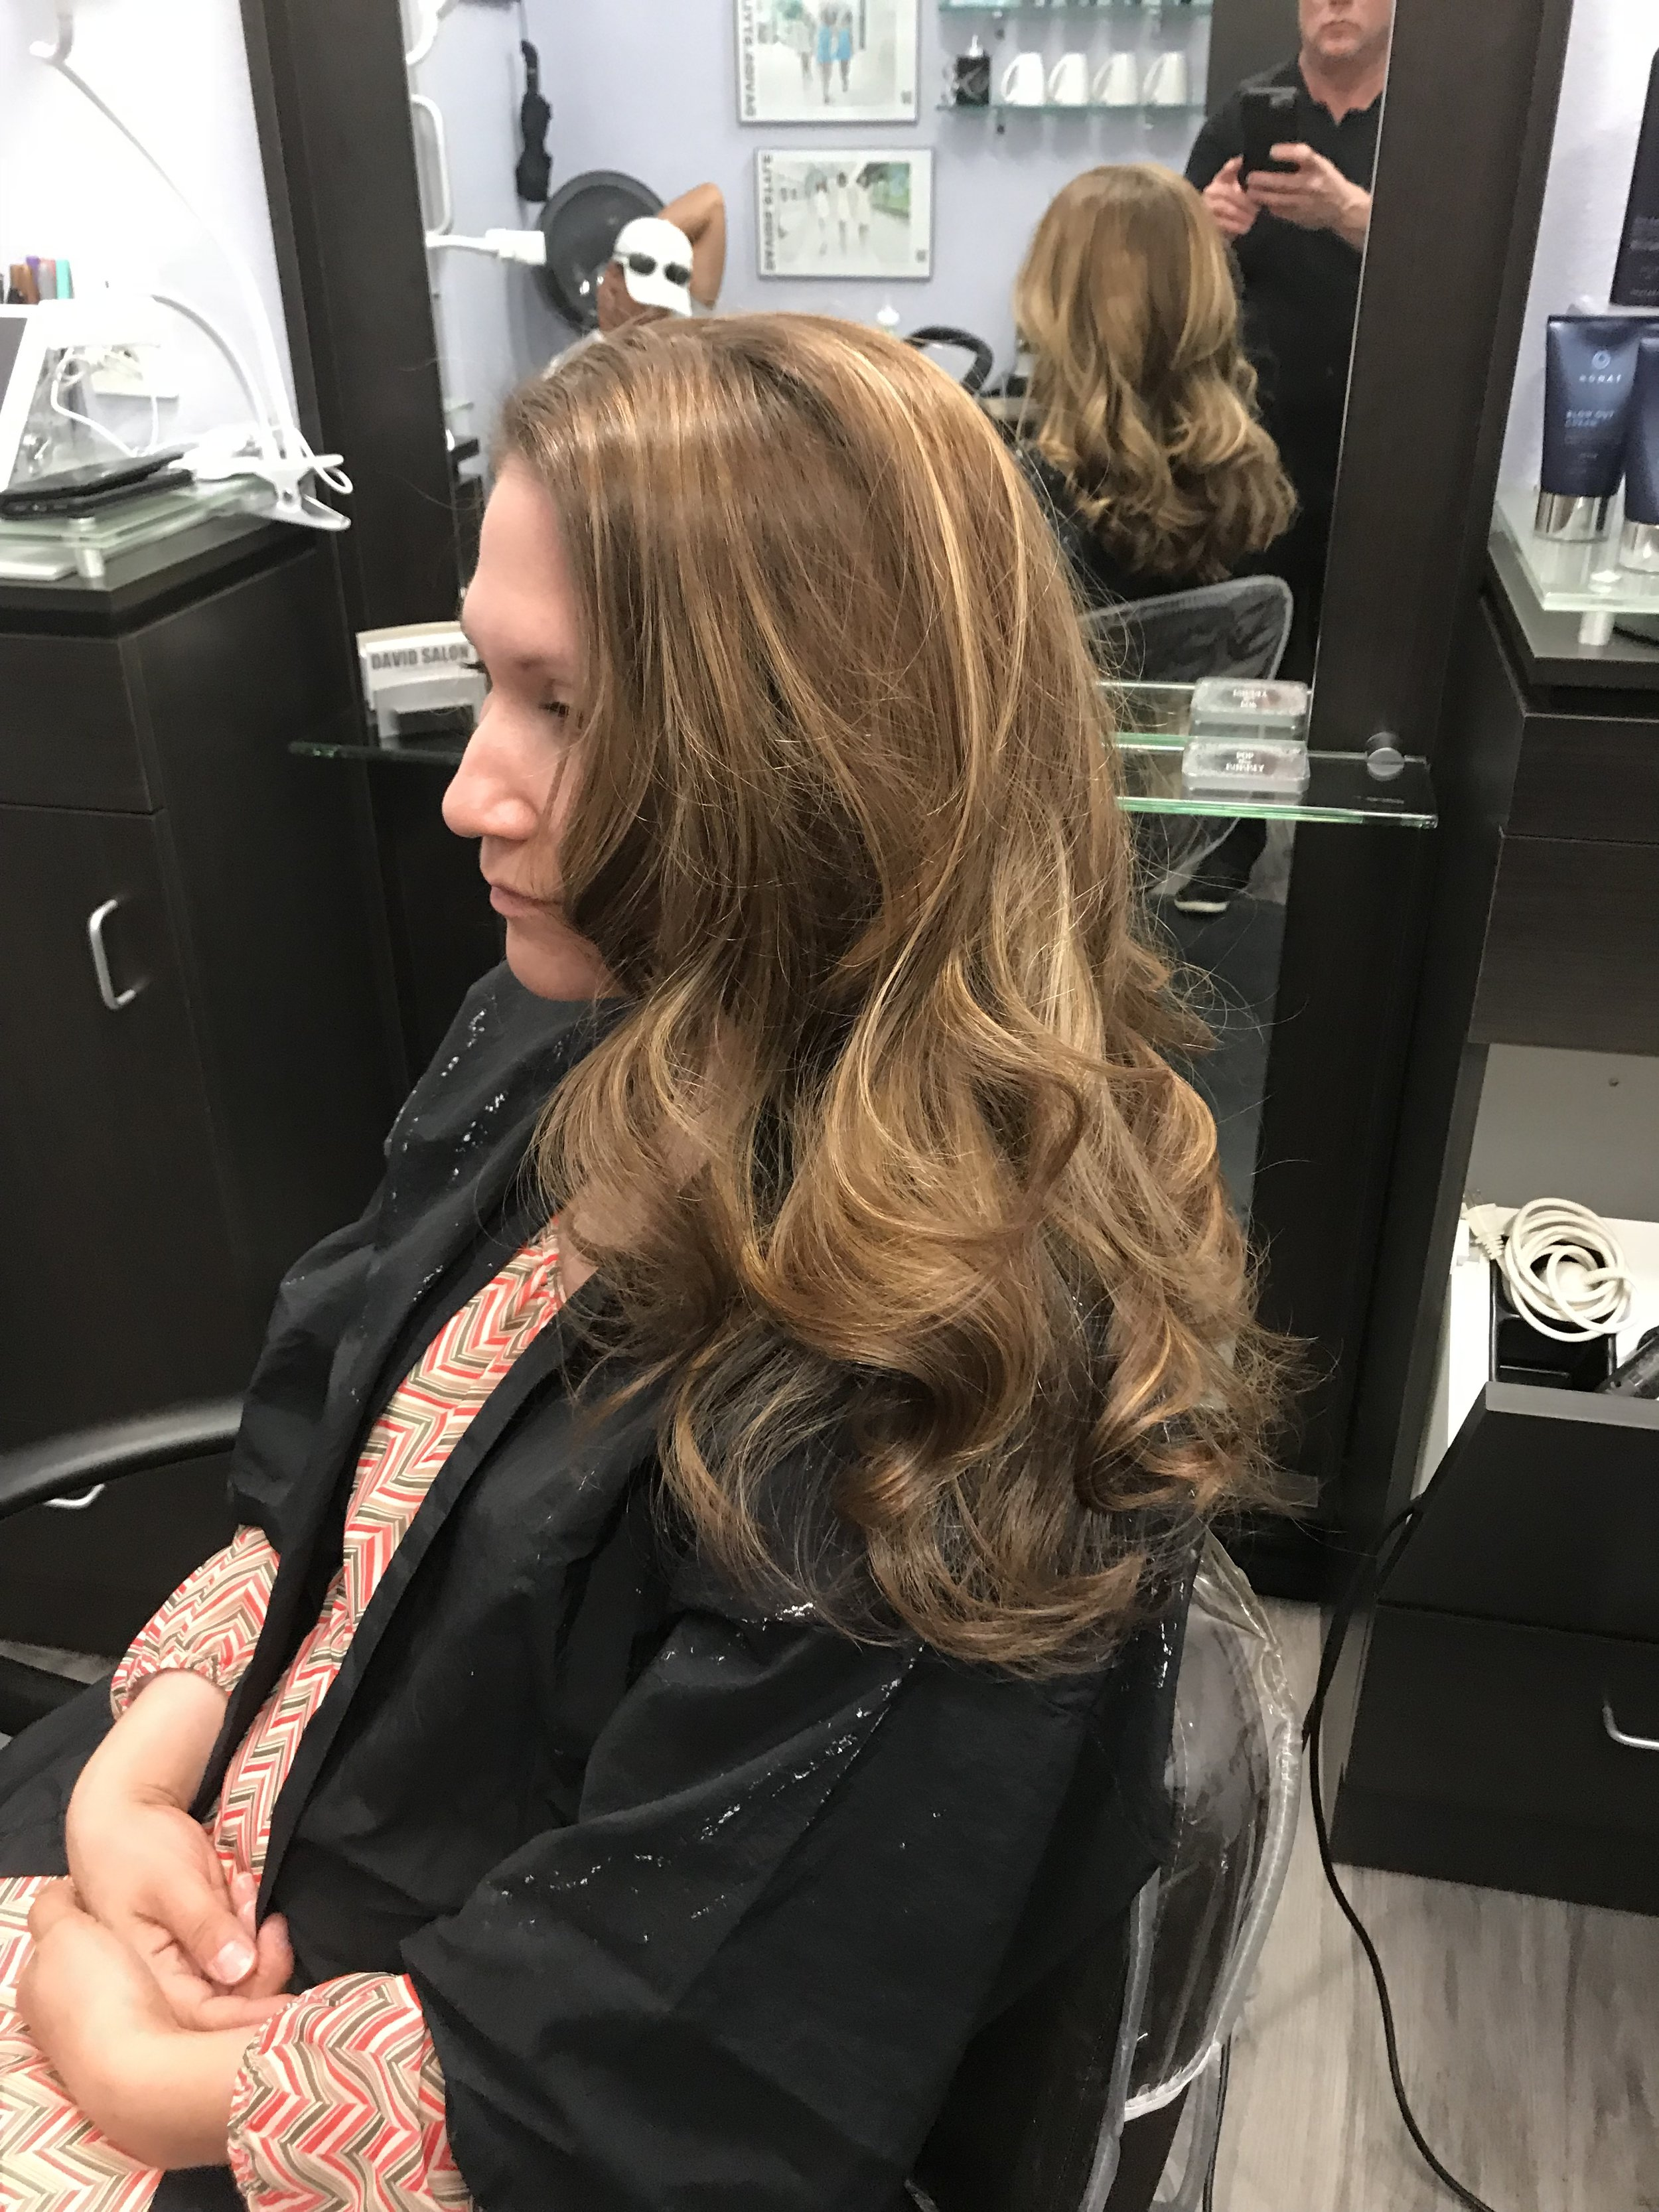 Chelsea after her balayage application